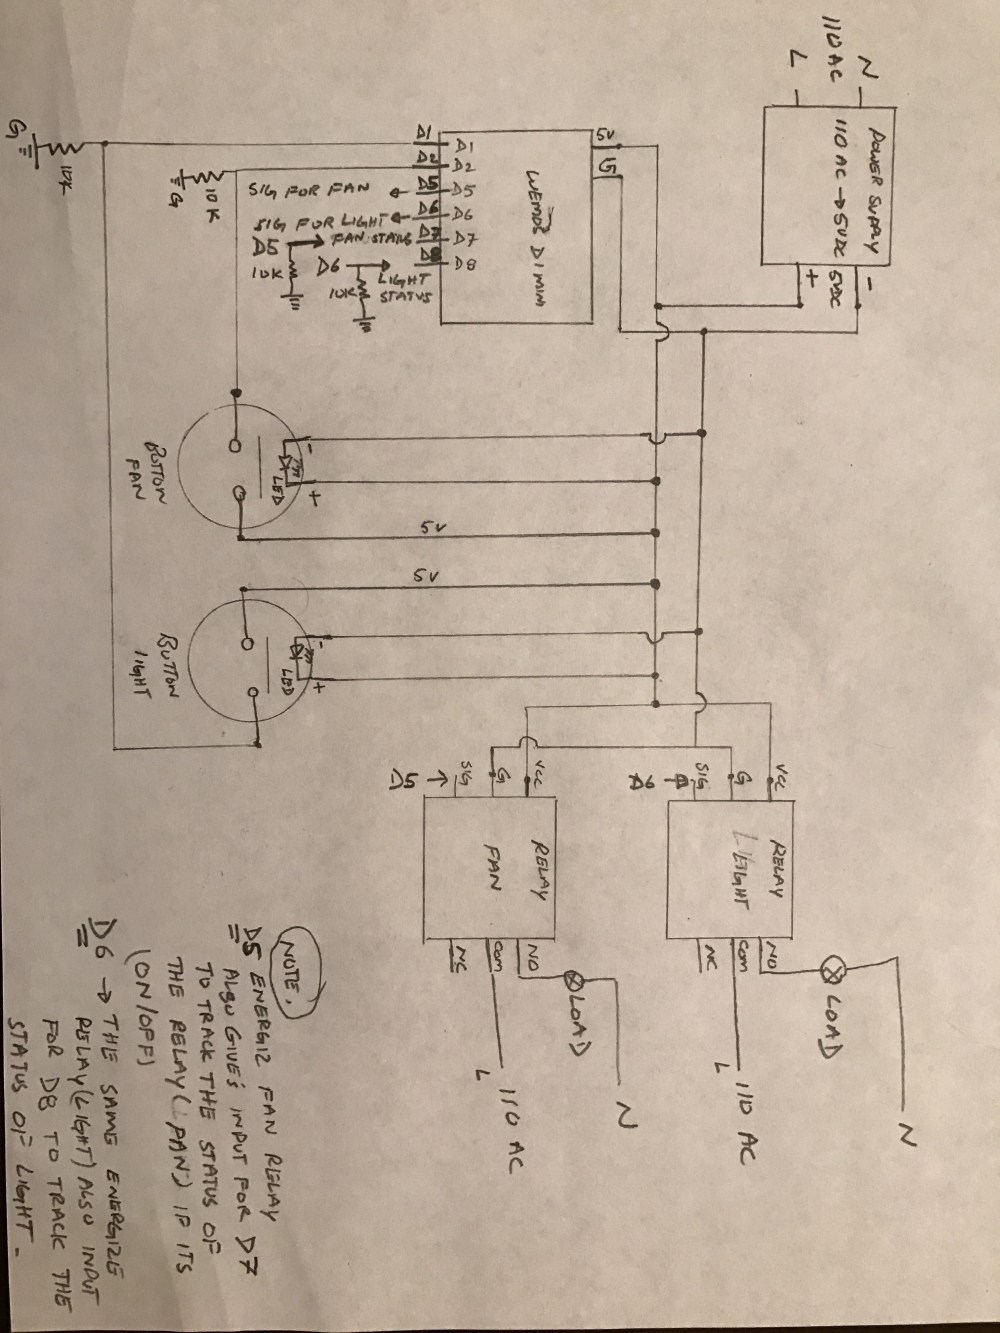 medium resolution of hello brother this is the circuit diagram sorry i did it the old style draw it with my hand i don t have the app for the circuit designer if u have